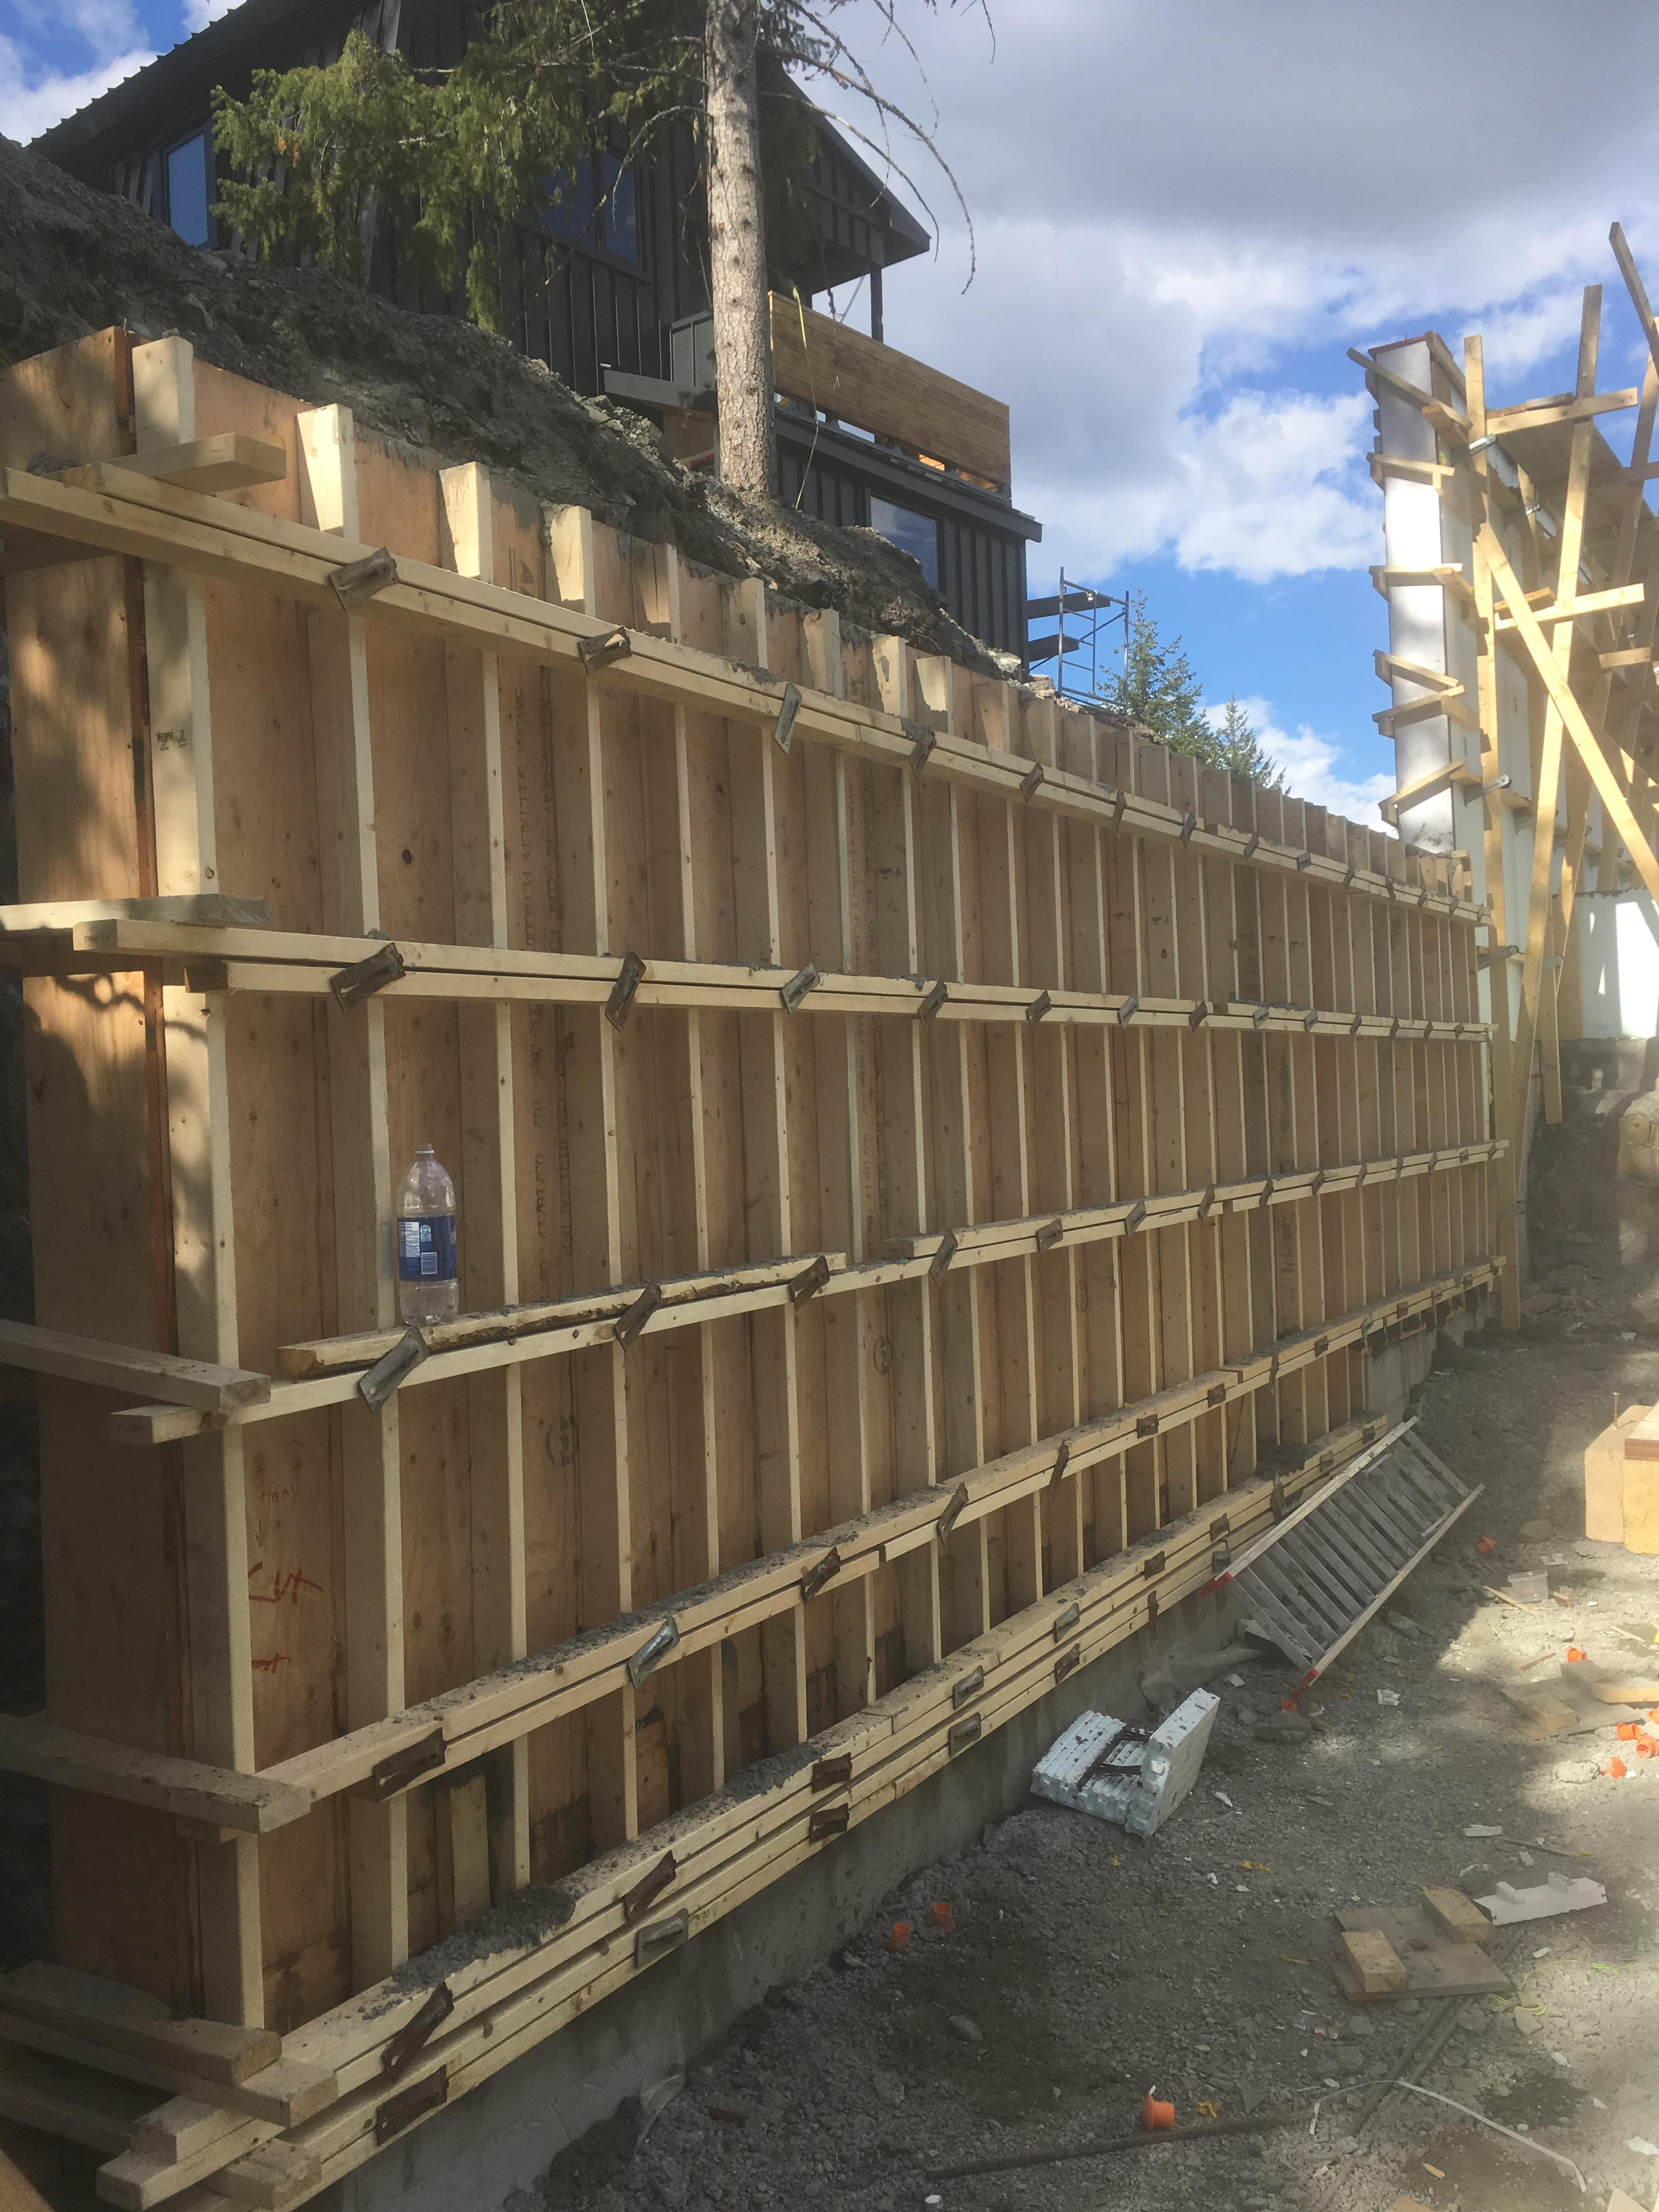 Pound 4 Pound, Framing and Forming. Wall forming